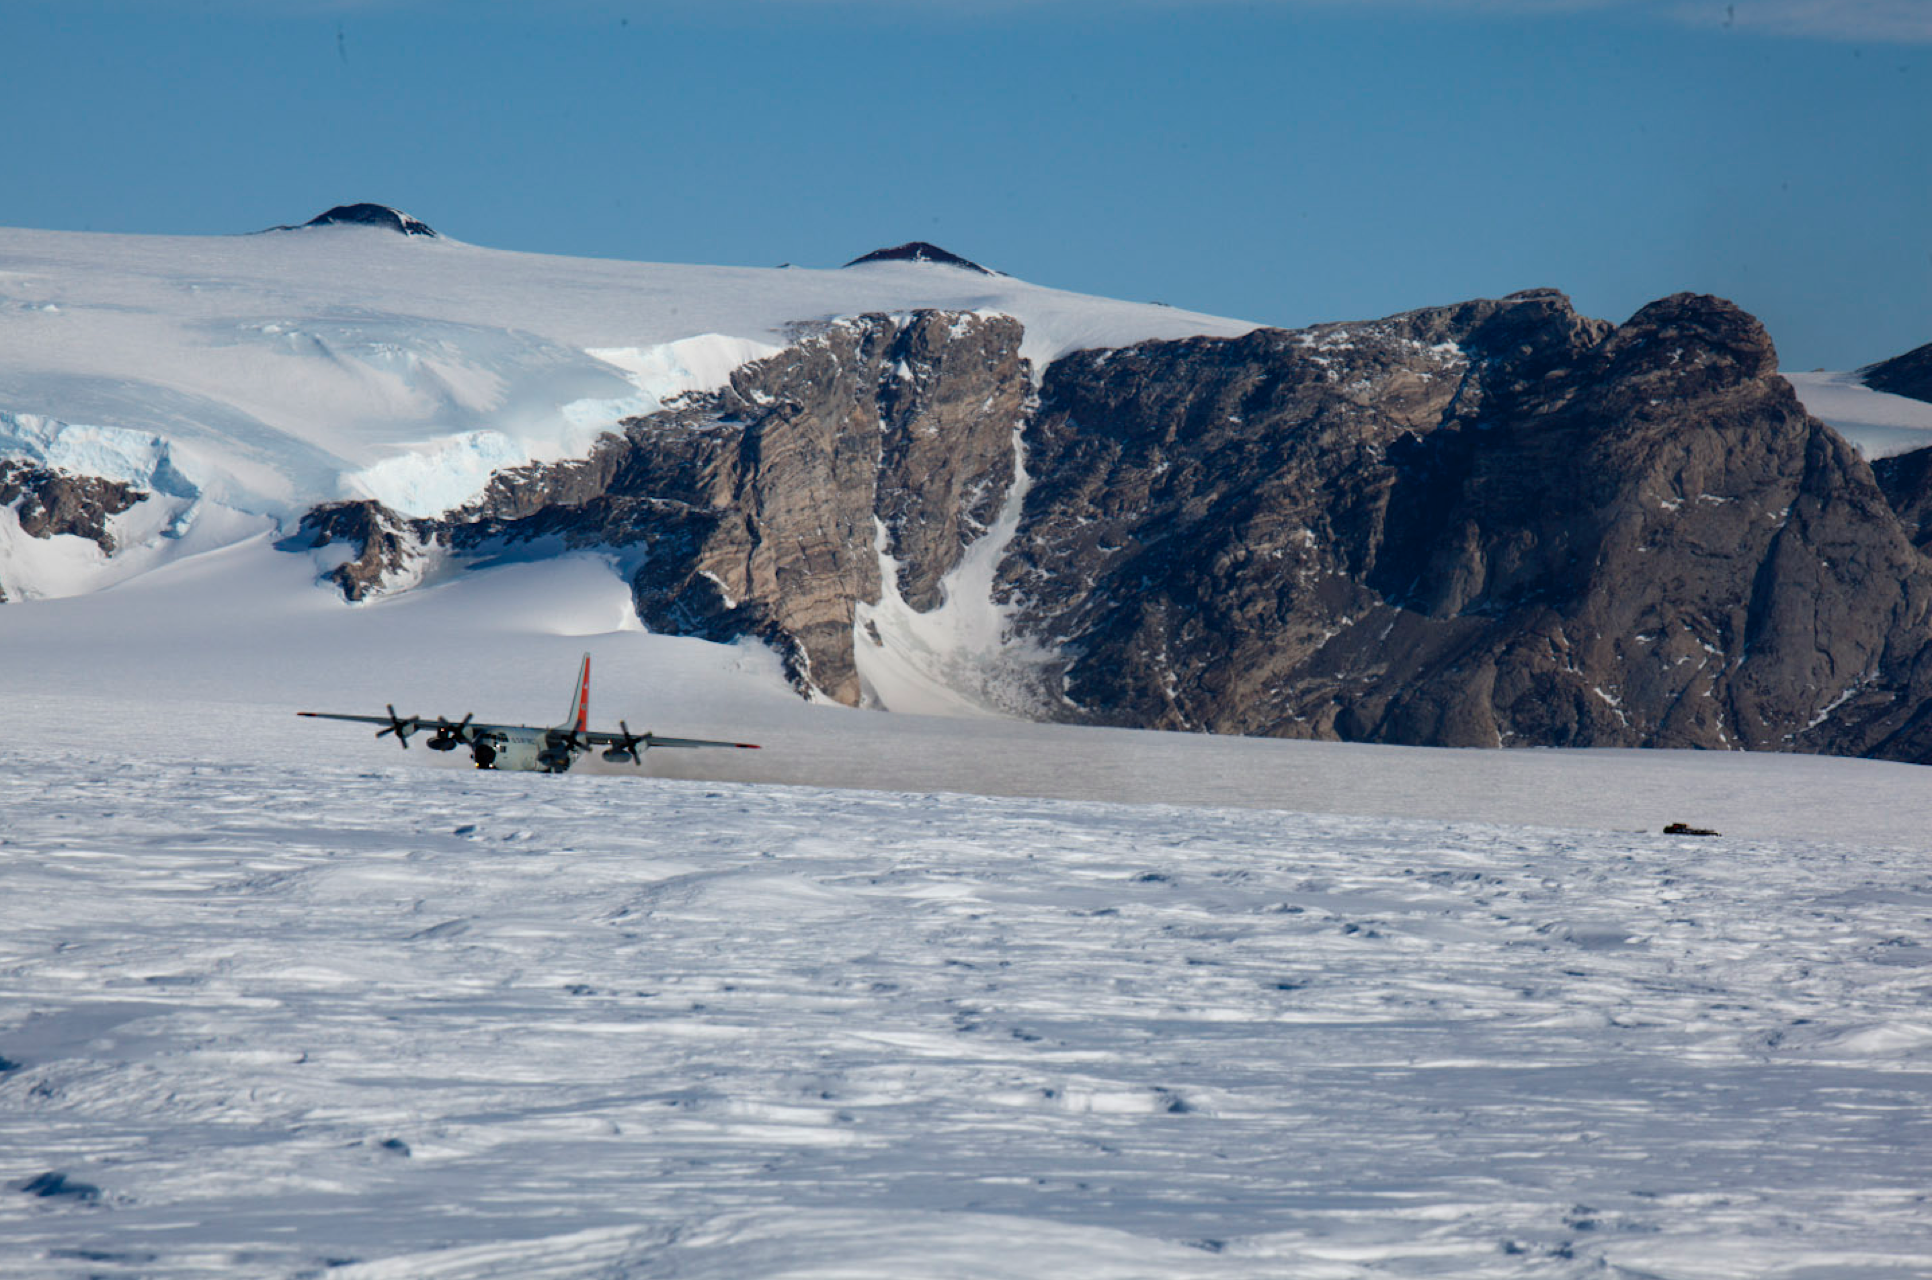 LC130 Hercules landing with the rest of our team in November 2011. One of roughest landings you can imagine.